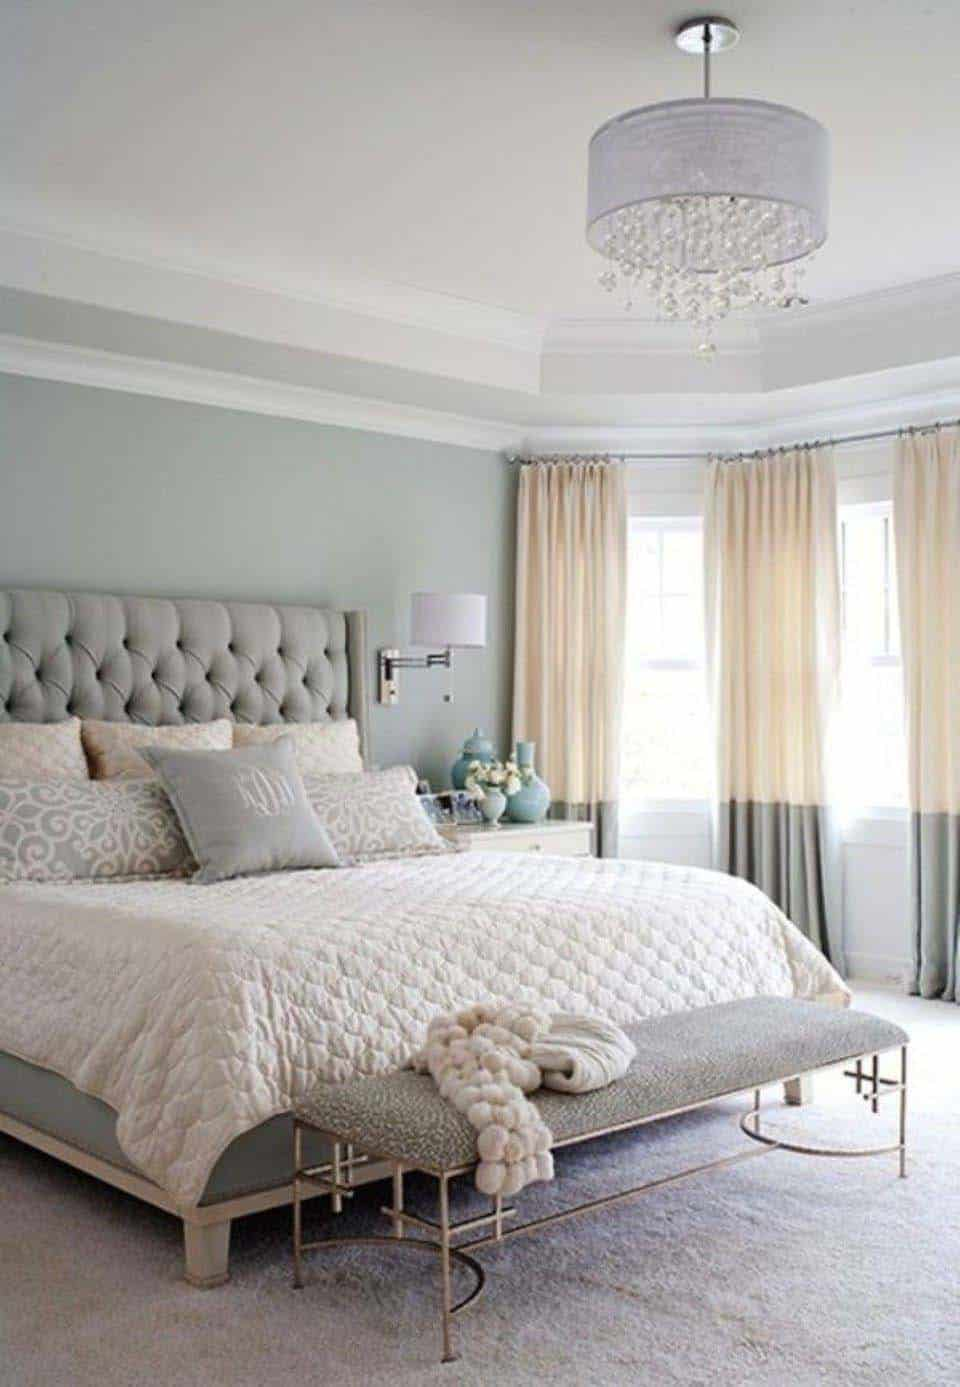 Fine 25 Absolutely Stunning Master Bedroom Color Scheme Ideas Interior Design Ideas Helimdqseriescom